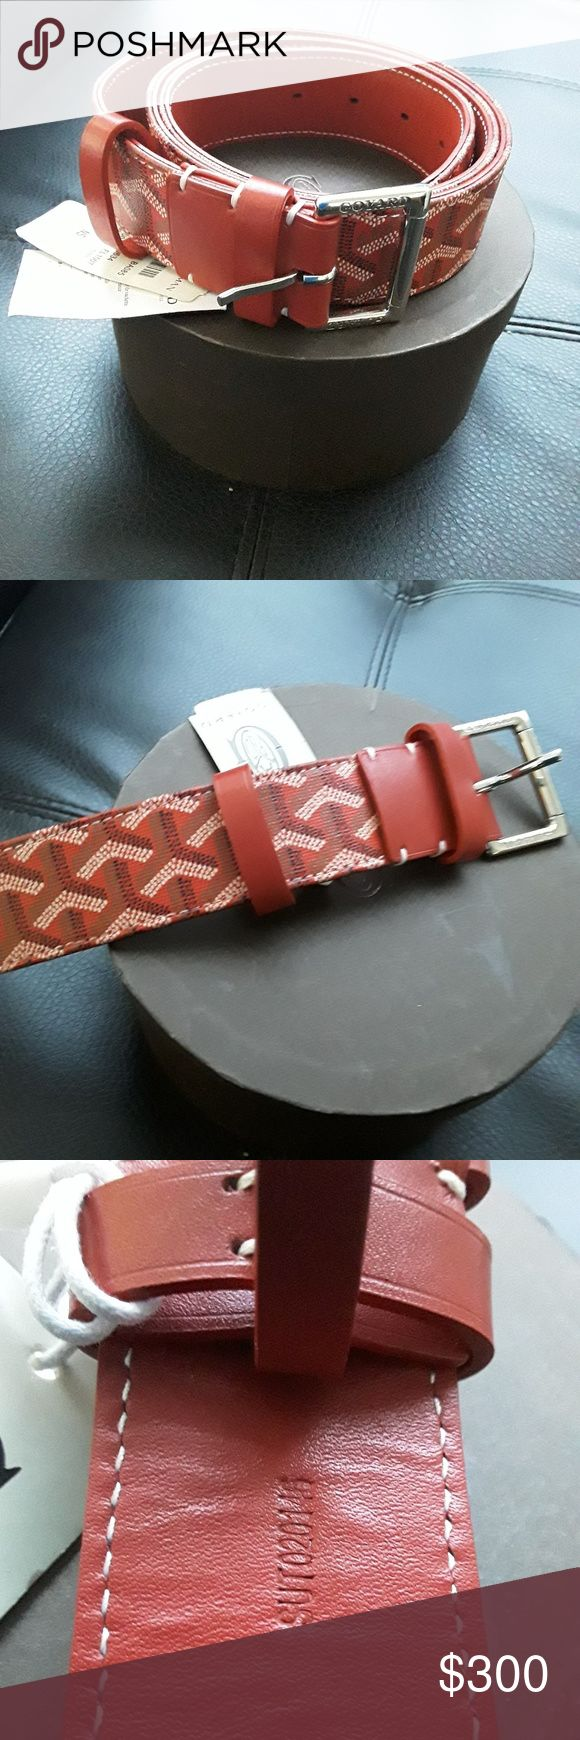 GOYARD BELT IT COME'S WITH ORIGINAL BOX, TAGS, DUST BAG, AUTHENTIC CARD, SHOPPING BAG, HOLE ADJUSTER. Goyard Accessories Belts